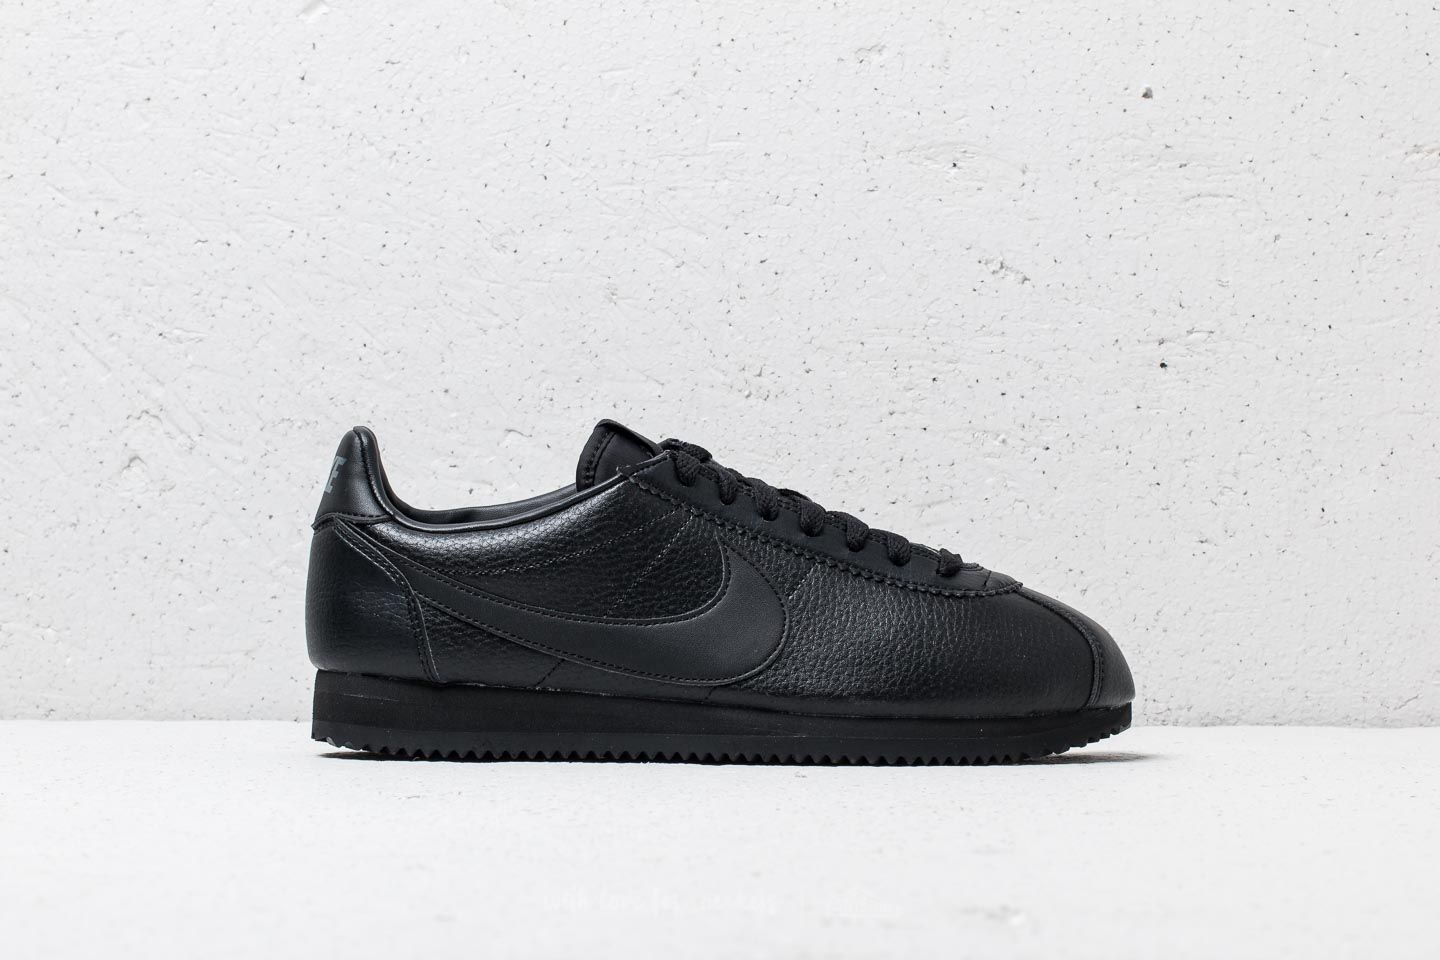 beecc458 Nike Classic Cortez Leather Black/ Black-Anthracite at a great price 2 680  ГРН